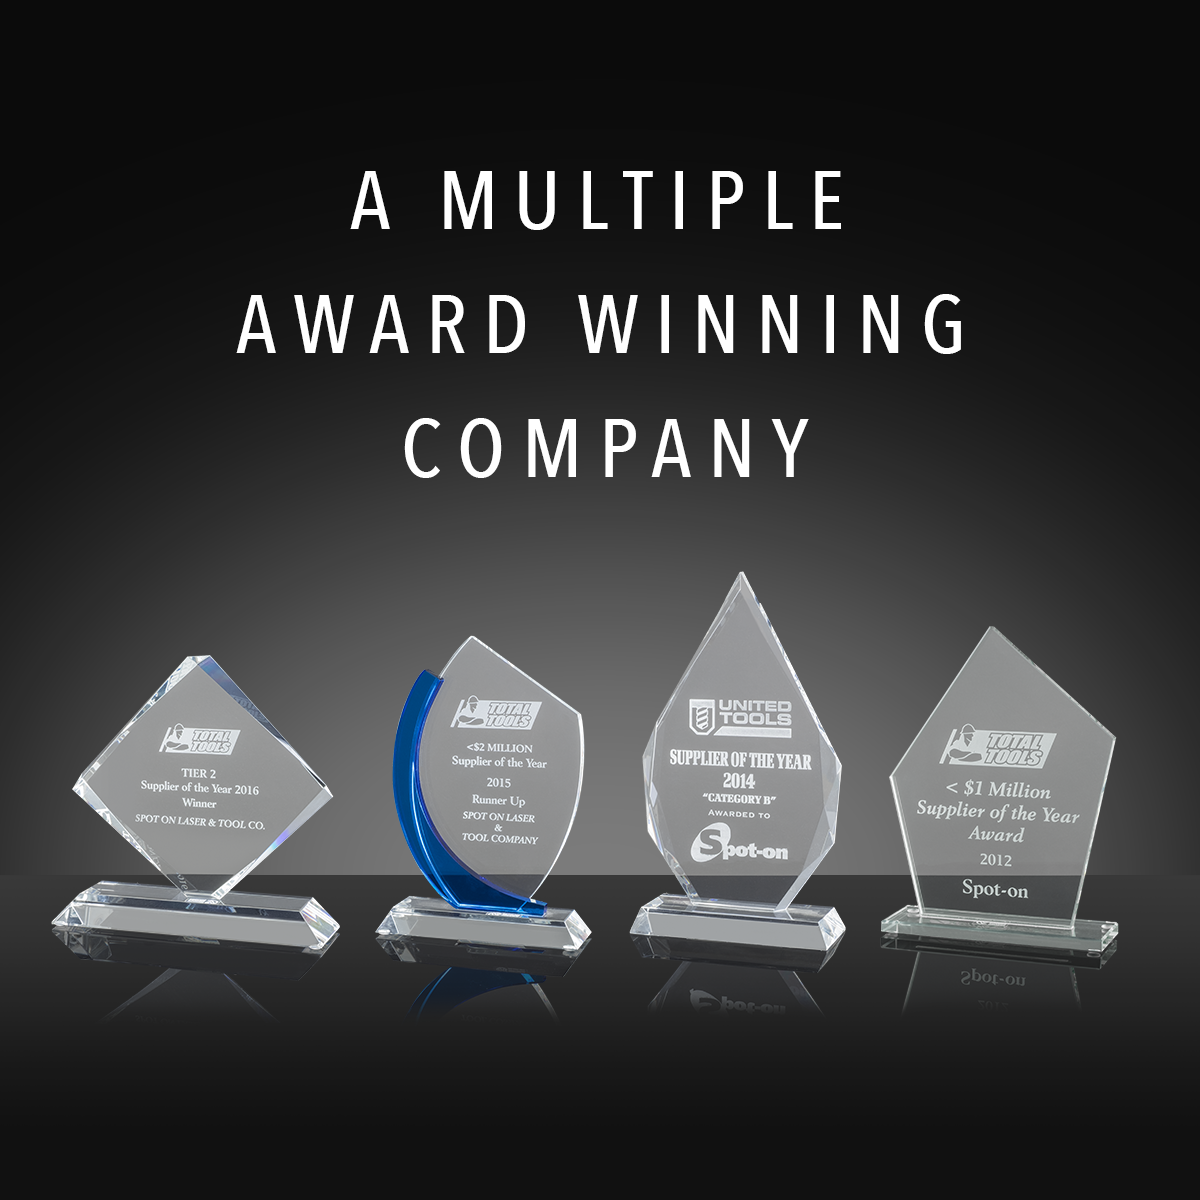 A multiple award winning company: Total Tools Supplier of the Year 2012, United Tools Supplier of the Year 2014, Total Tools Supplier of the Year 2015 runner‑up, Total Tools Supplier of the Year 2016.